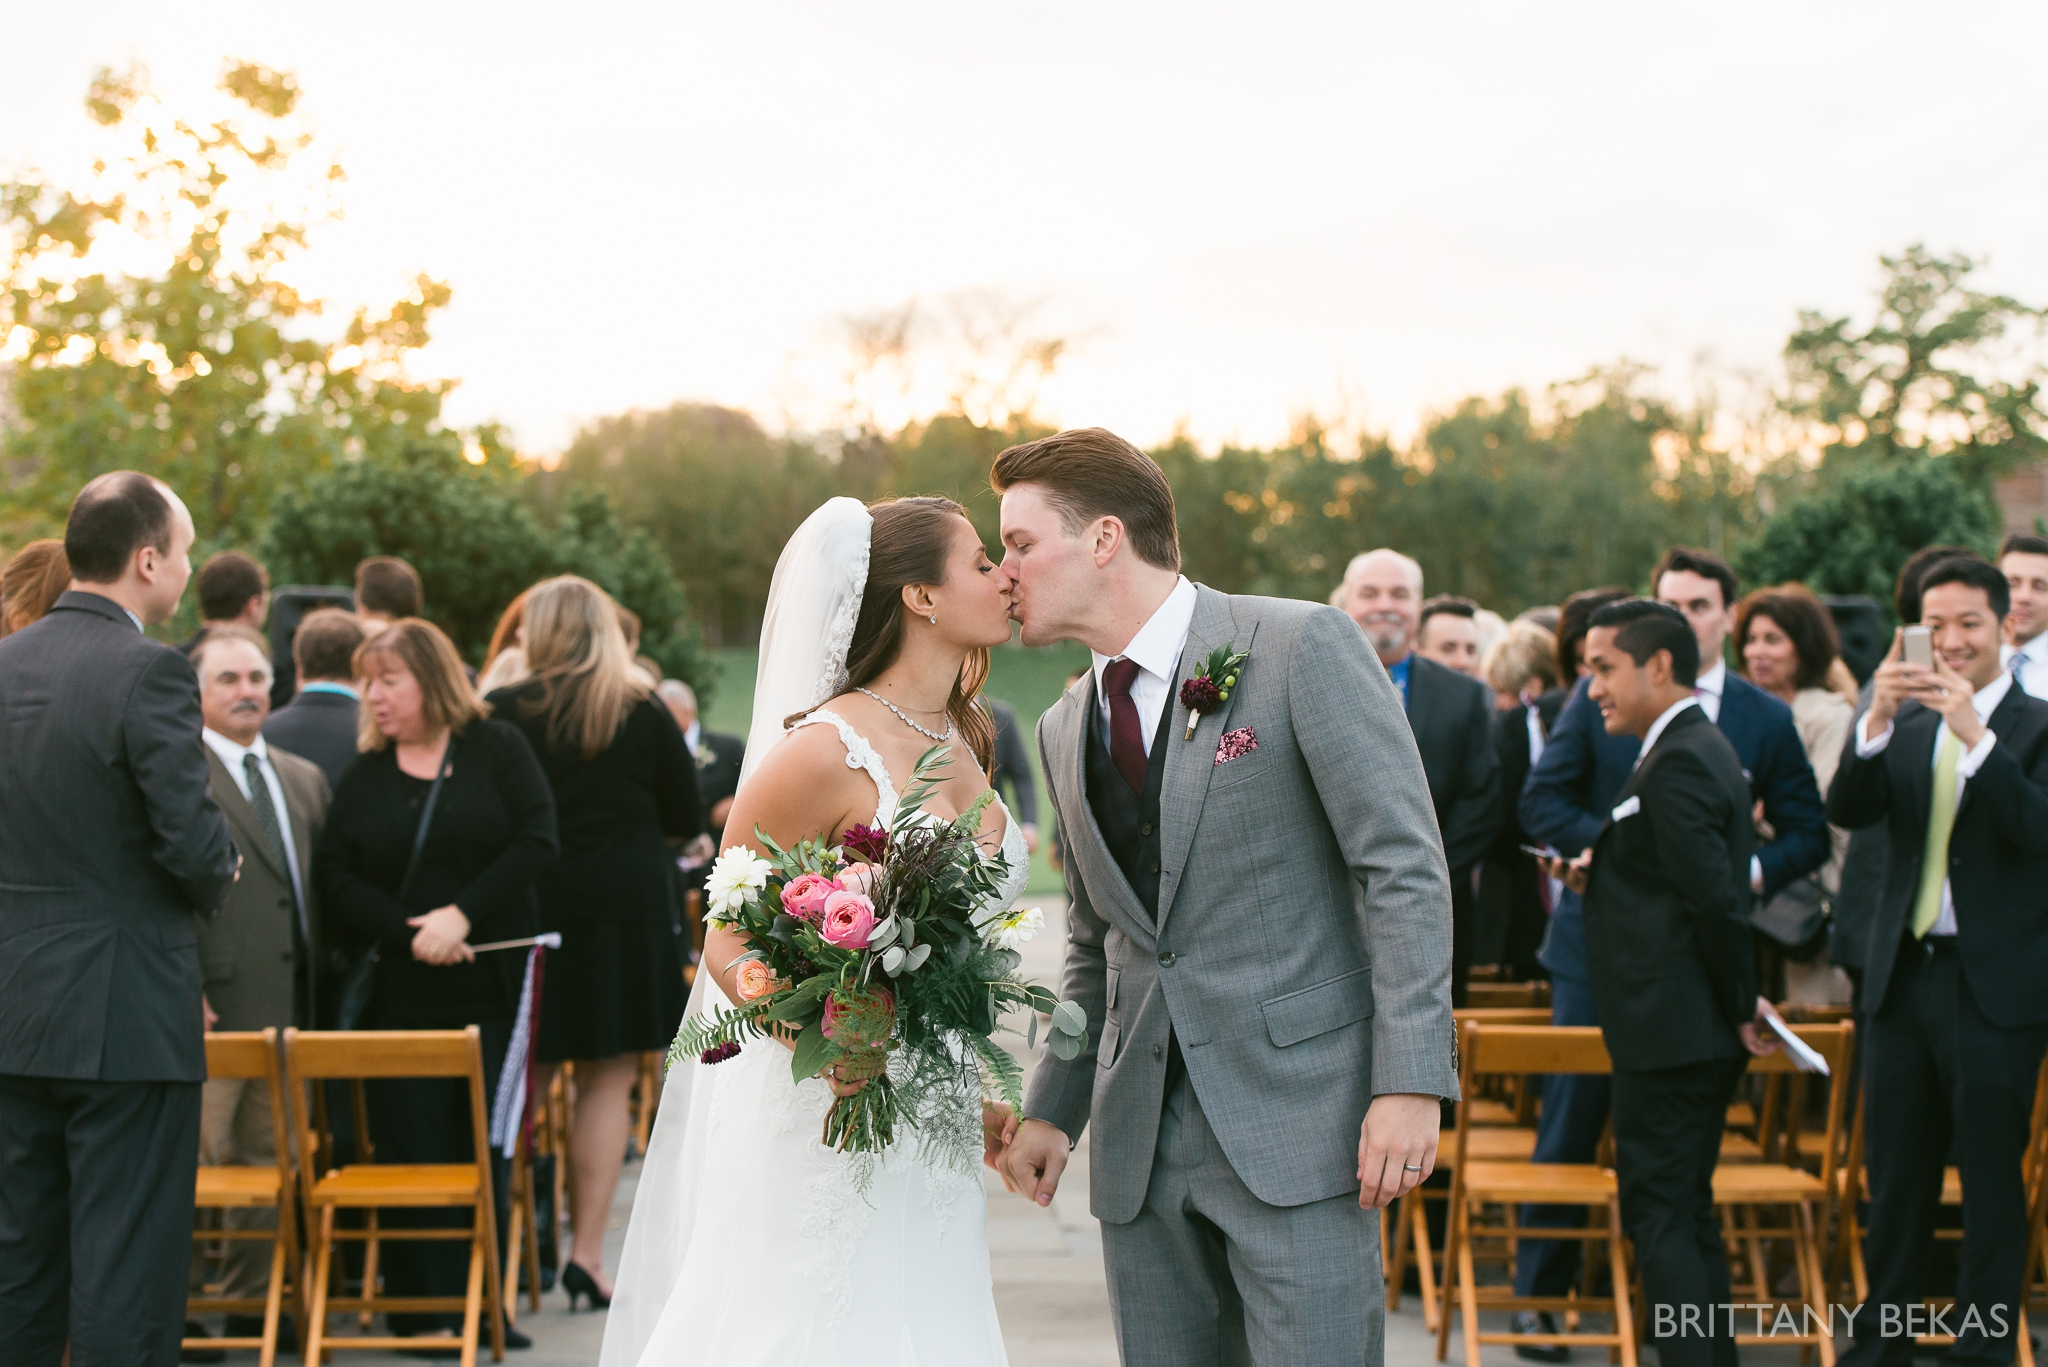 Chicago Wedding Garfield Park Conservatory Wedding Photos - Brittany Bekas Photography_0047